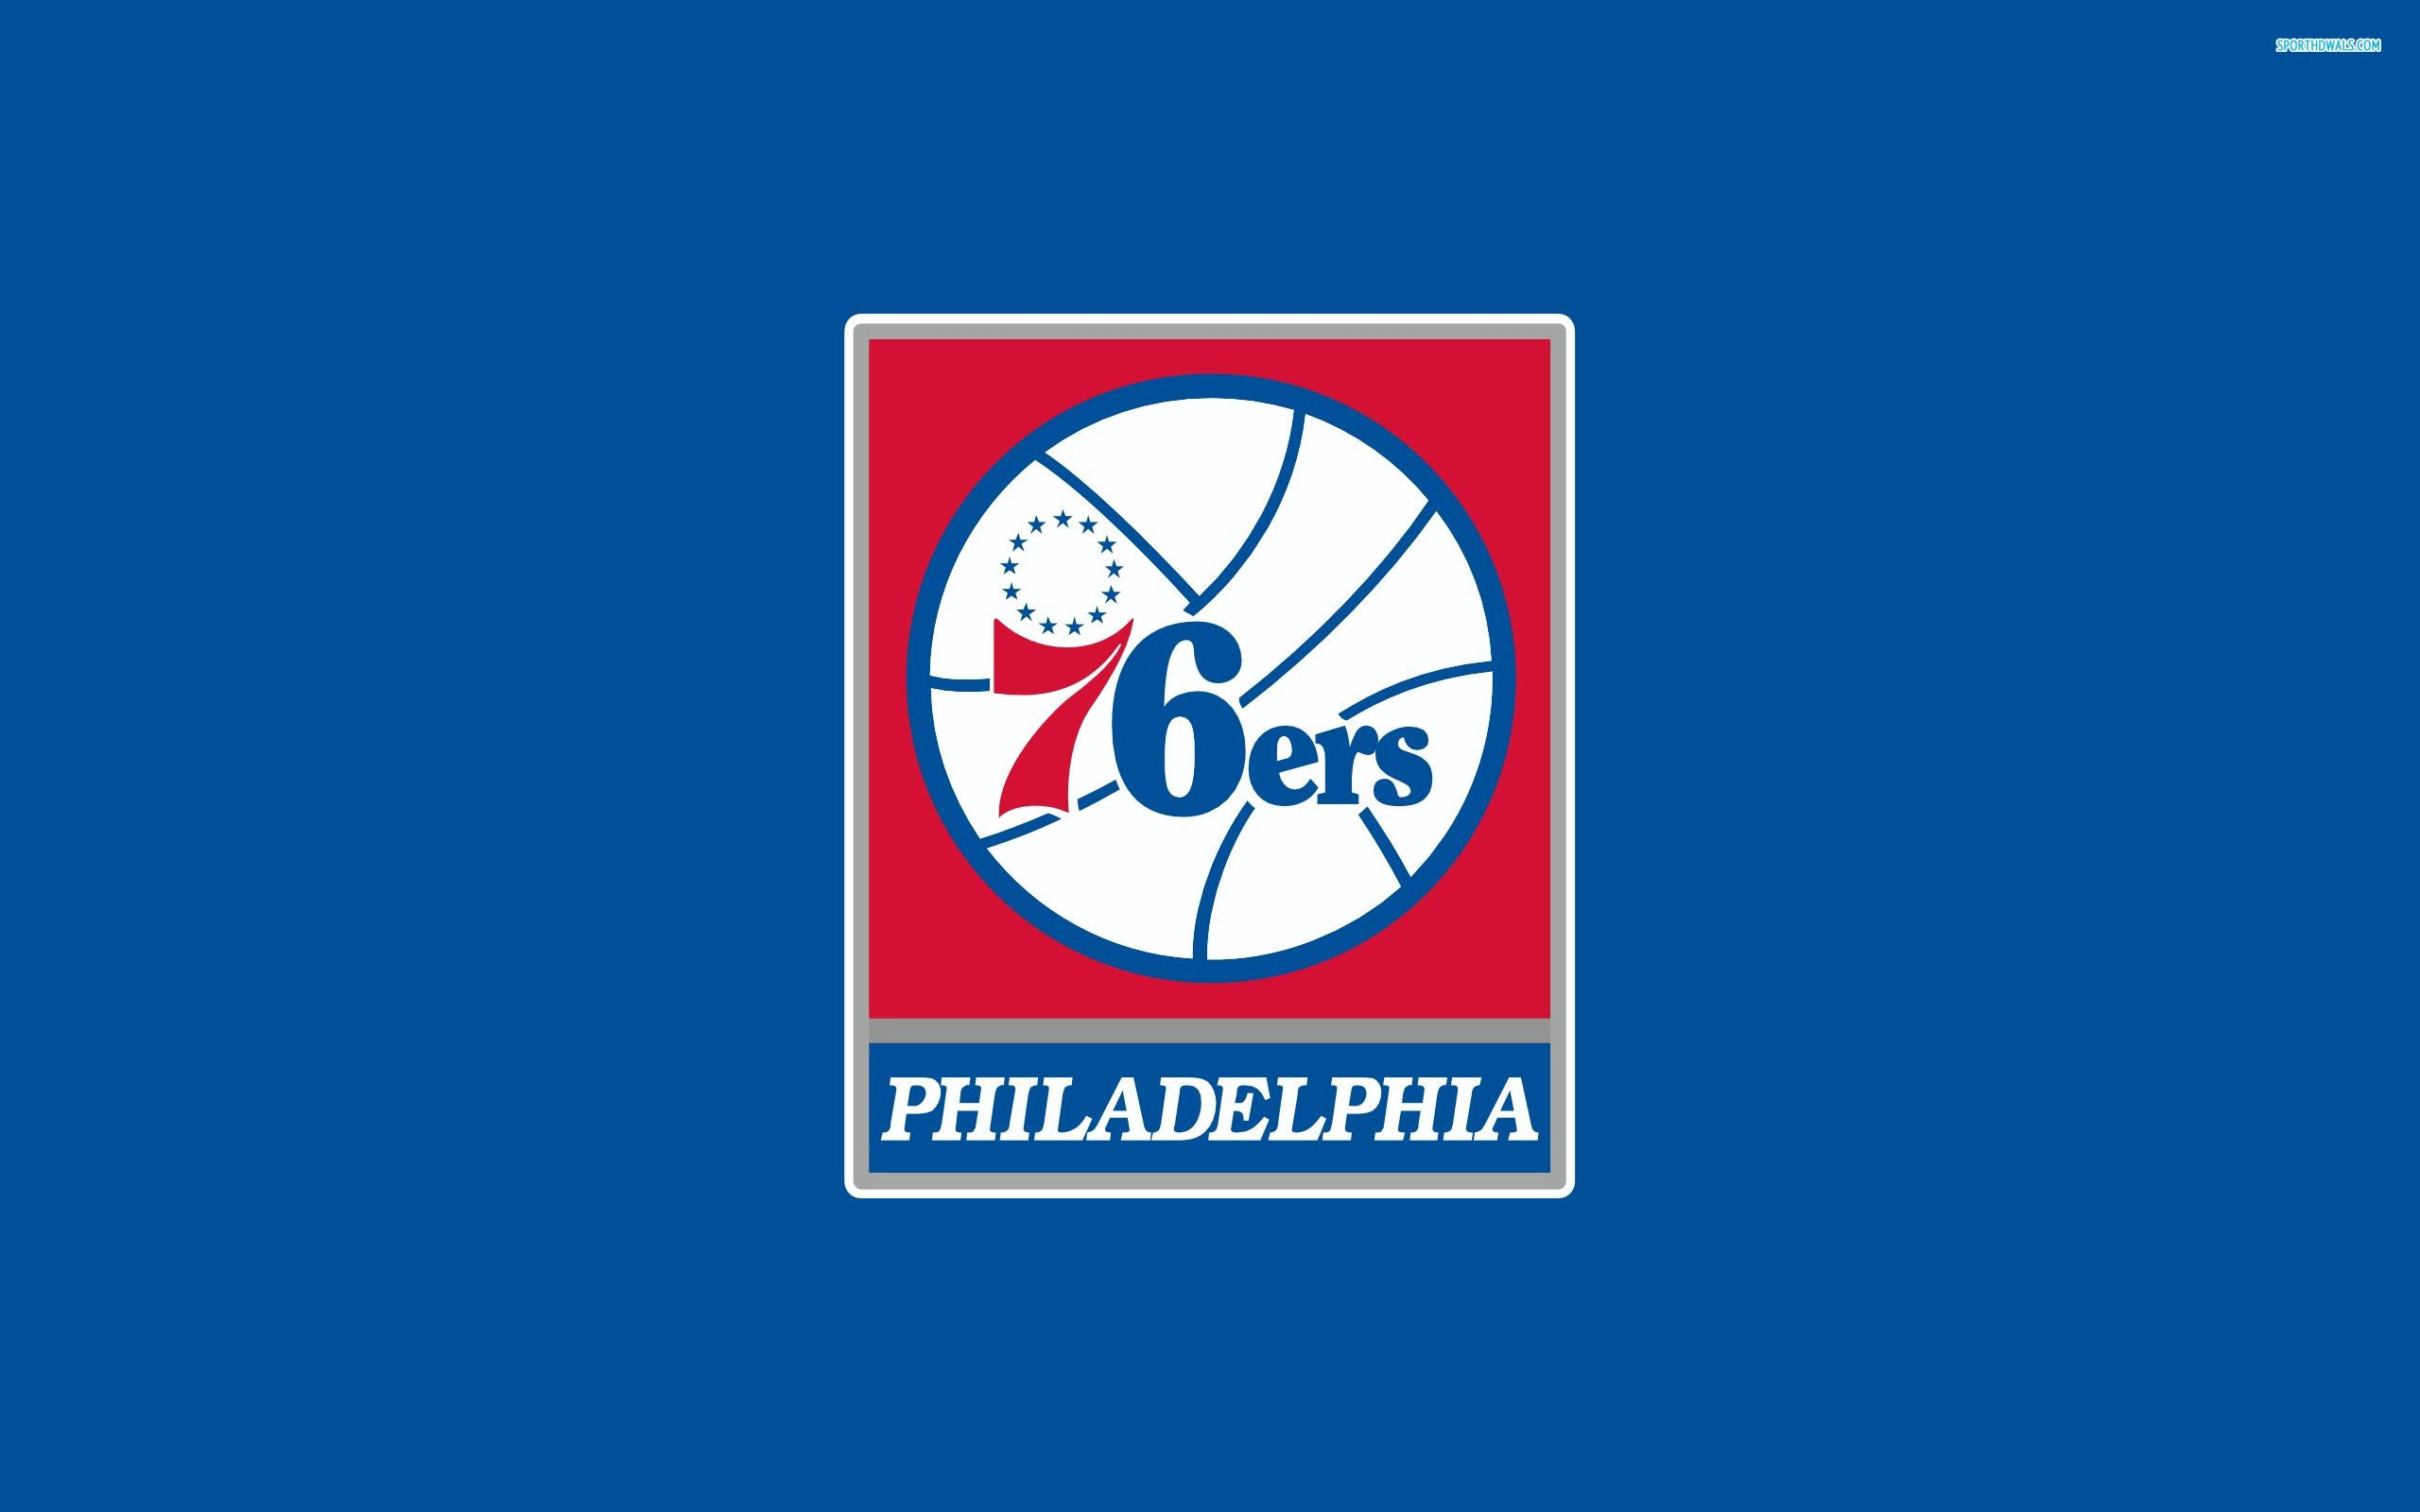 Philadelphia 76ers Wallpapers | HD Wallpapers Early